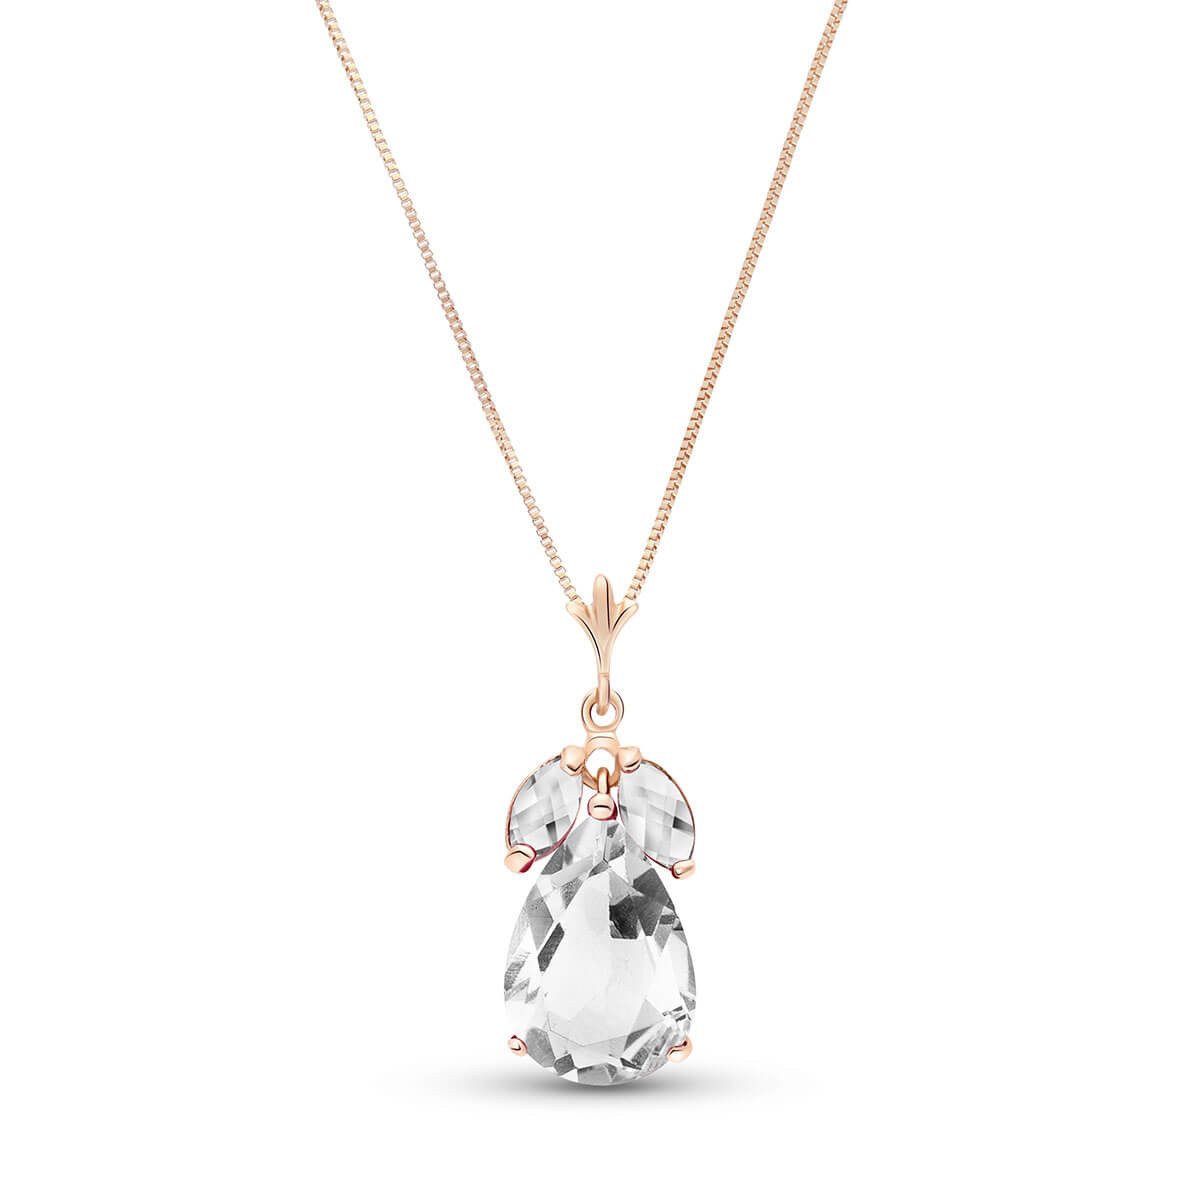 White Topaz Pear Drop Pendant Necklace 6.5 ctw in 9ct Rose Gold